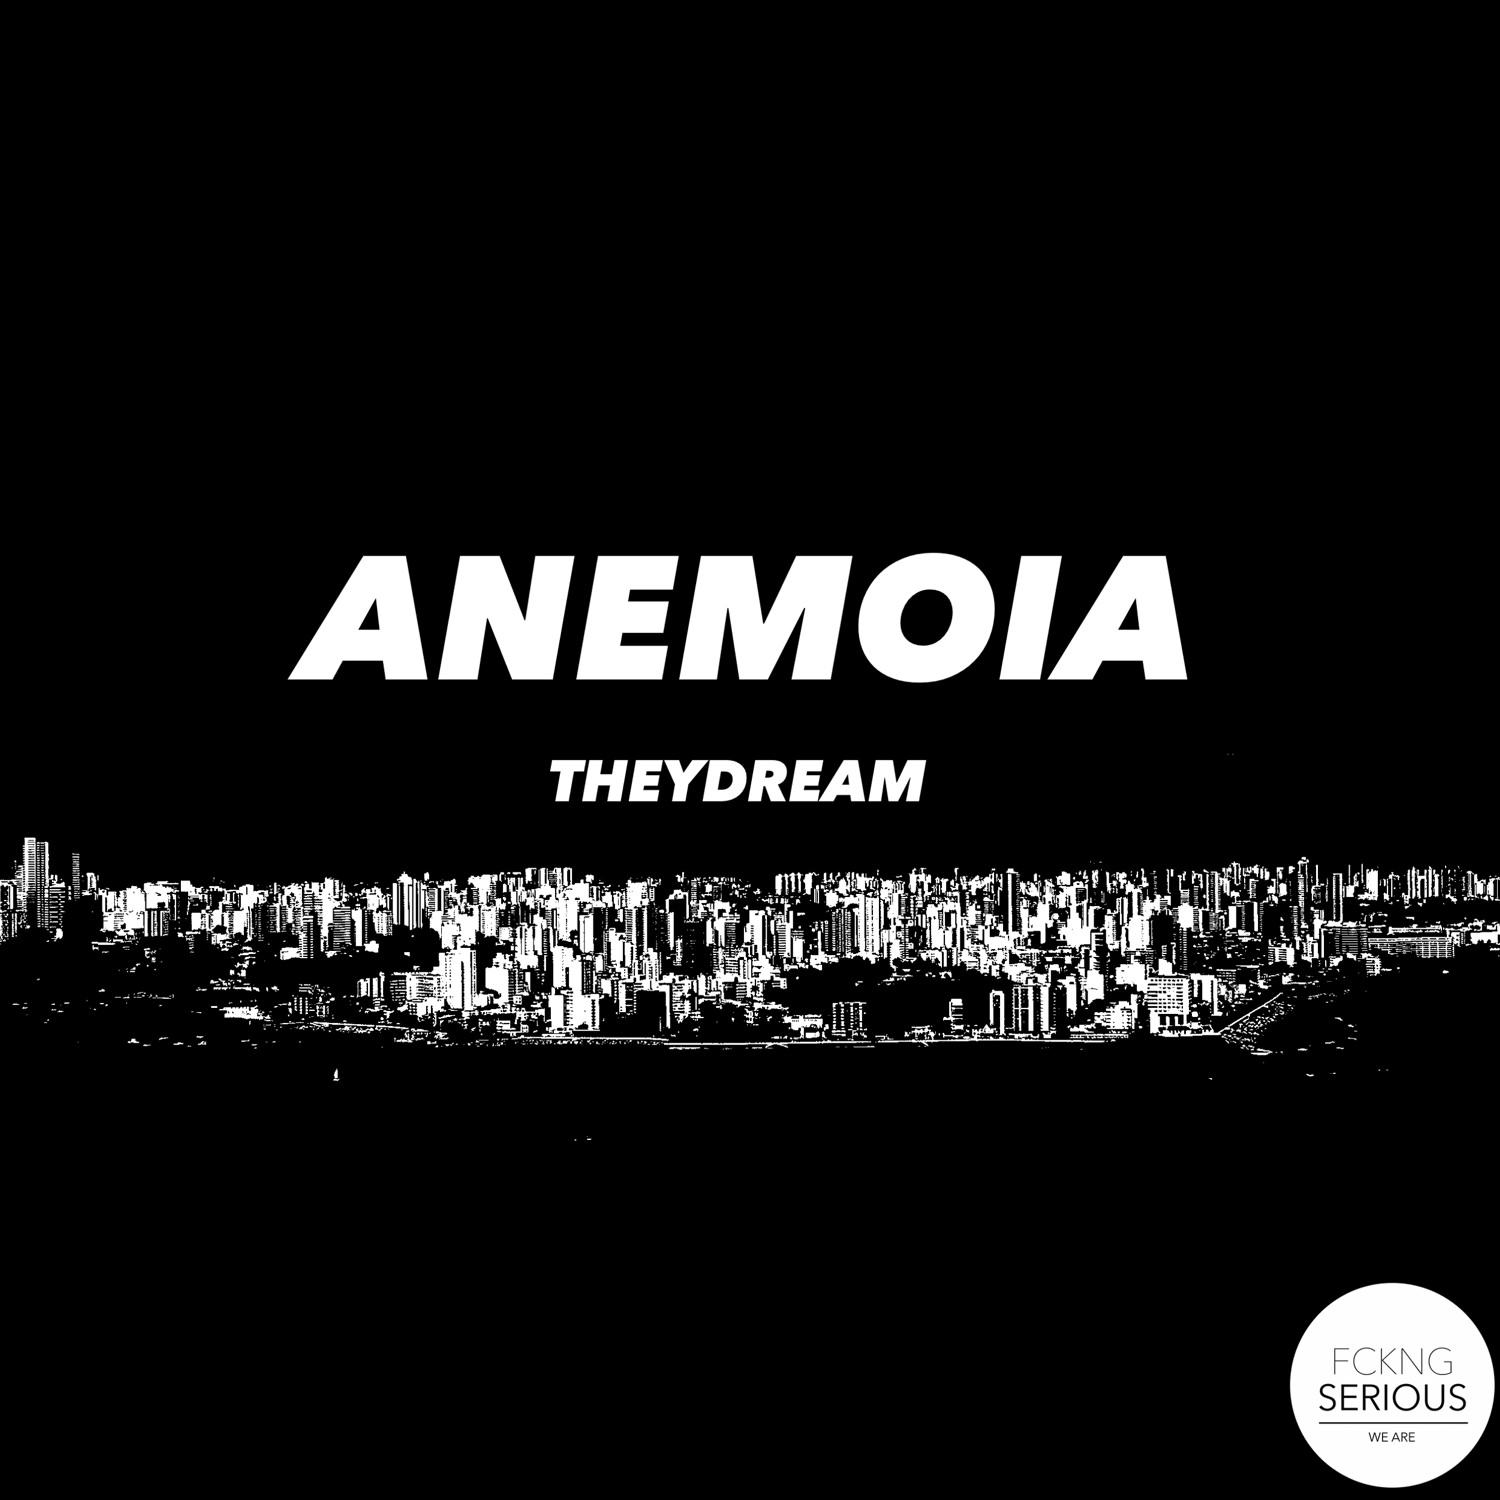 ANEMOIA - THEYDREAM